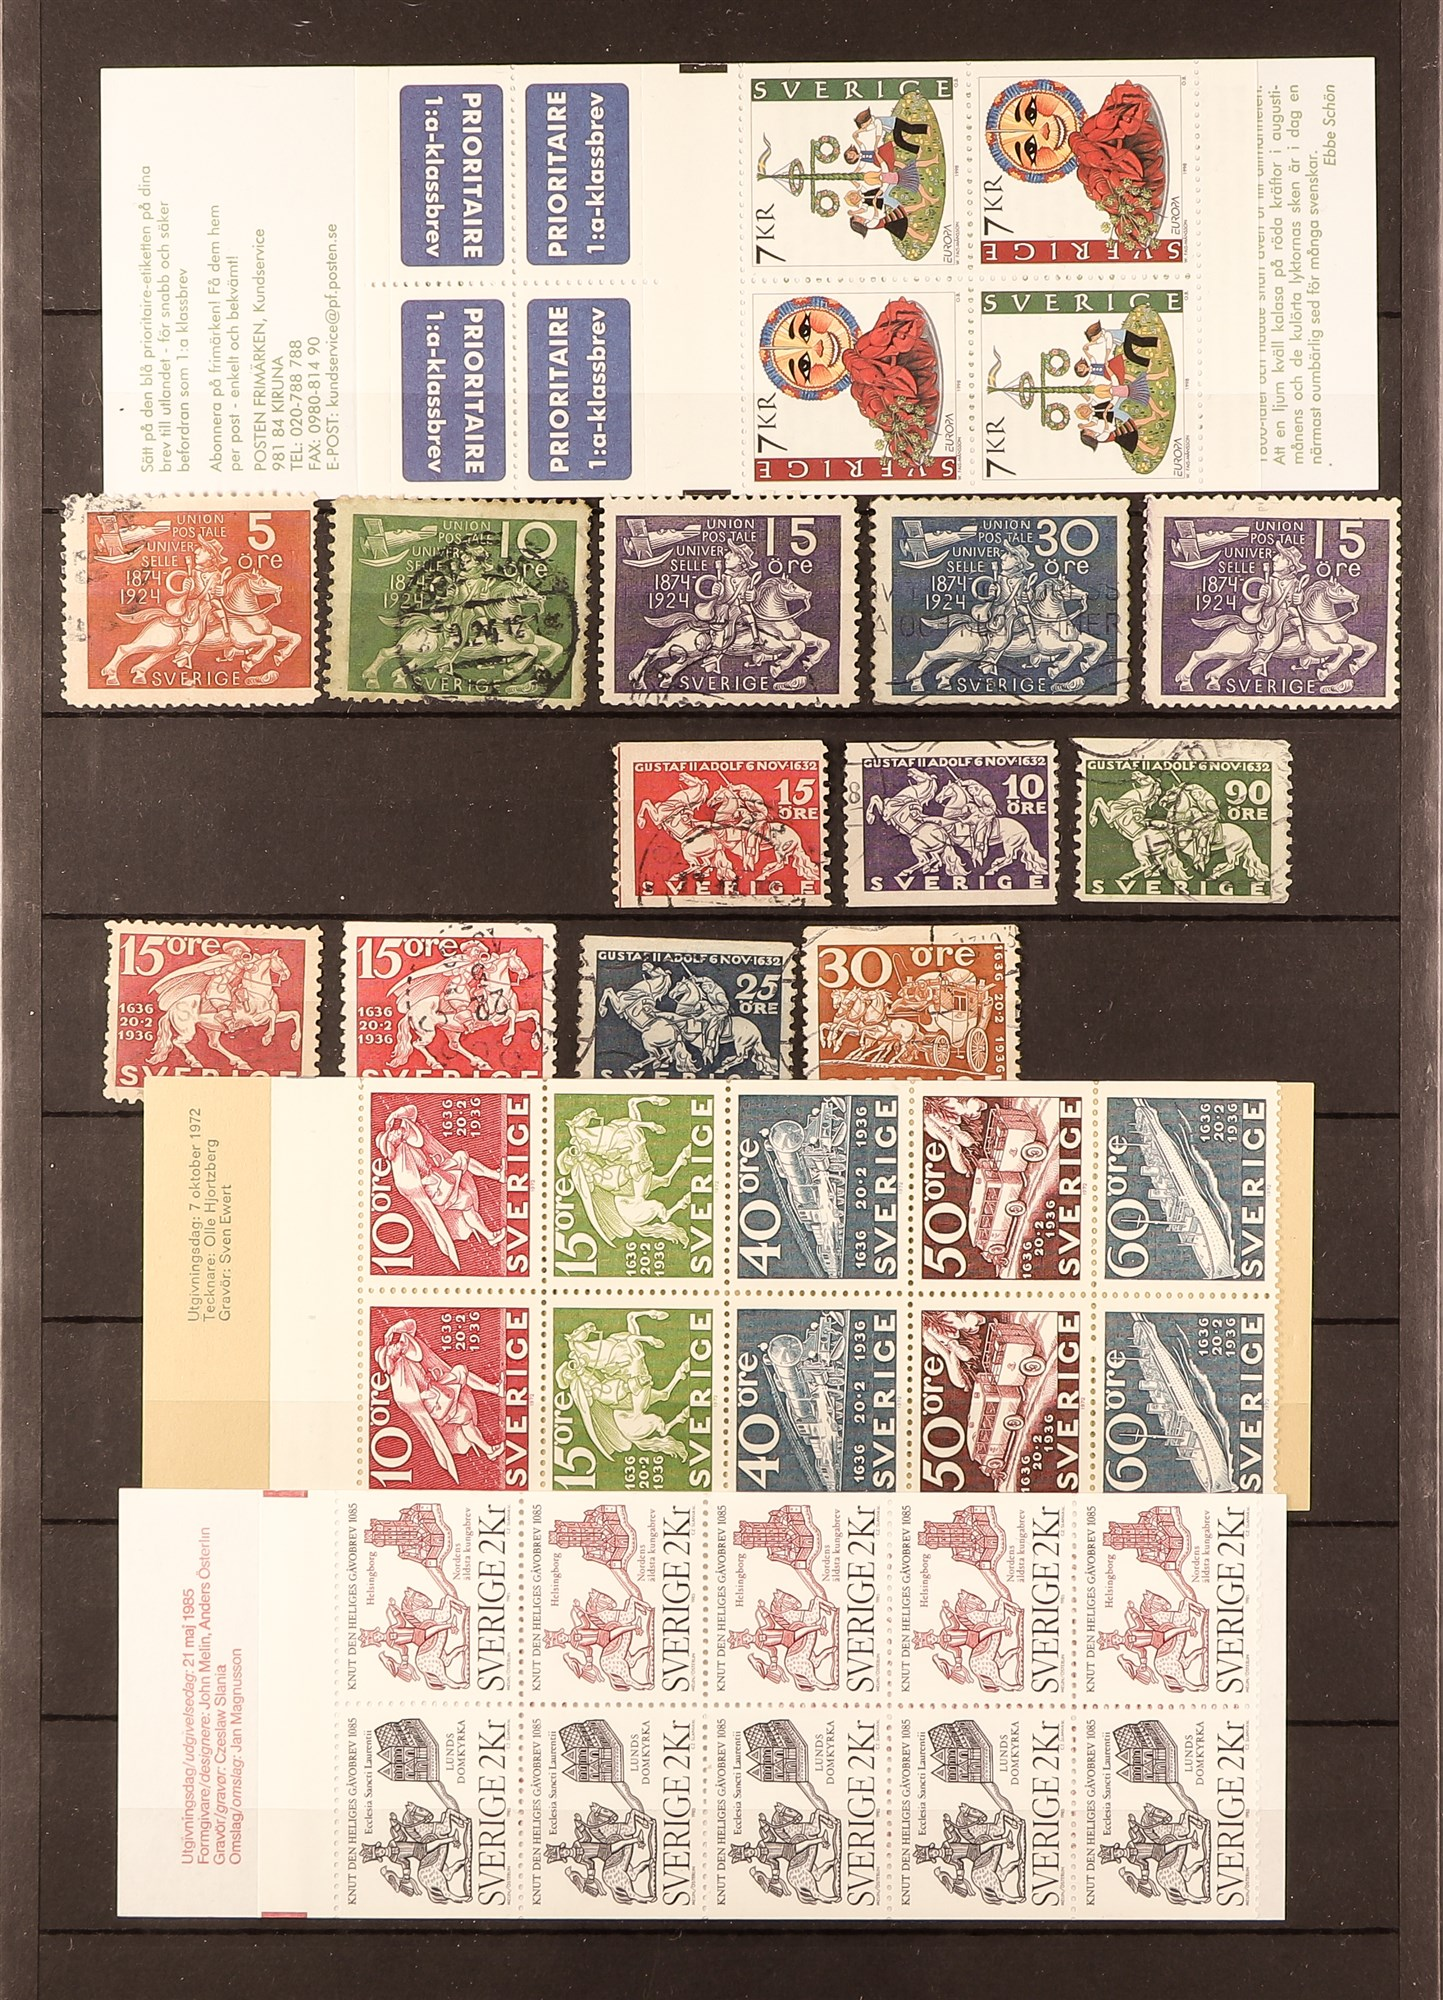 TOPICALS HORSES OF SWEDEN 1920's-90's mint and used (mostly never hinged ) collection incl. booklets